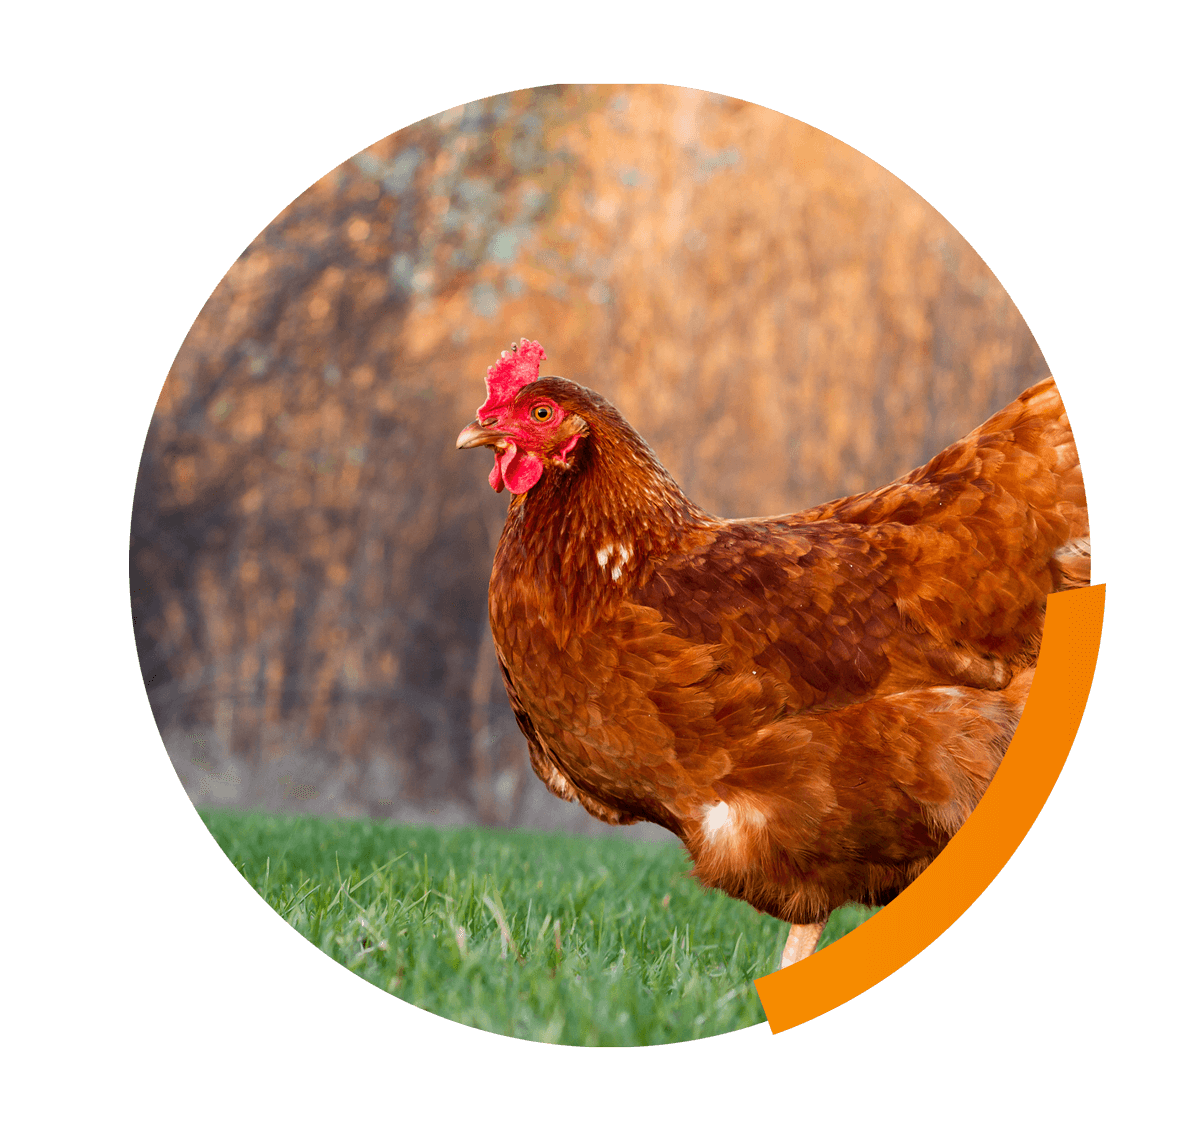 Assessing and improving poultry  welfare in commercial production systems